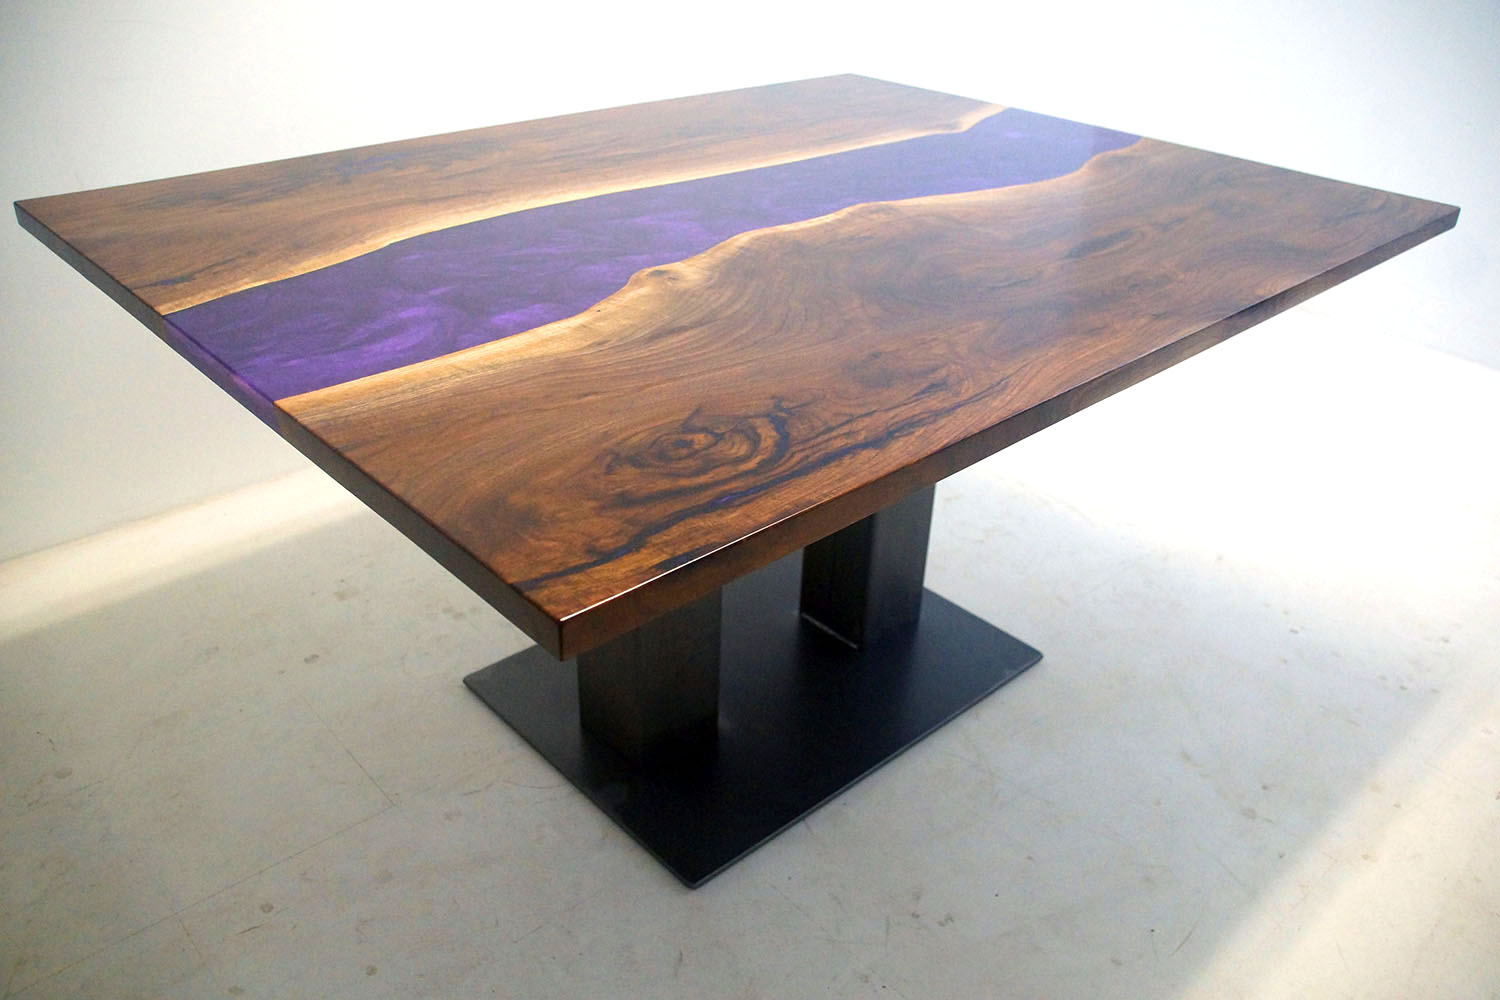 Custom Made Purple Epoxy Resin River Table Sold Online By Chagrin Valley Custom Furniture In 2020 [Live Edge Wood Slab]